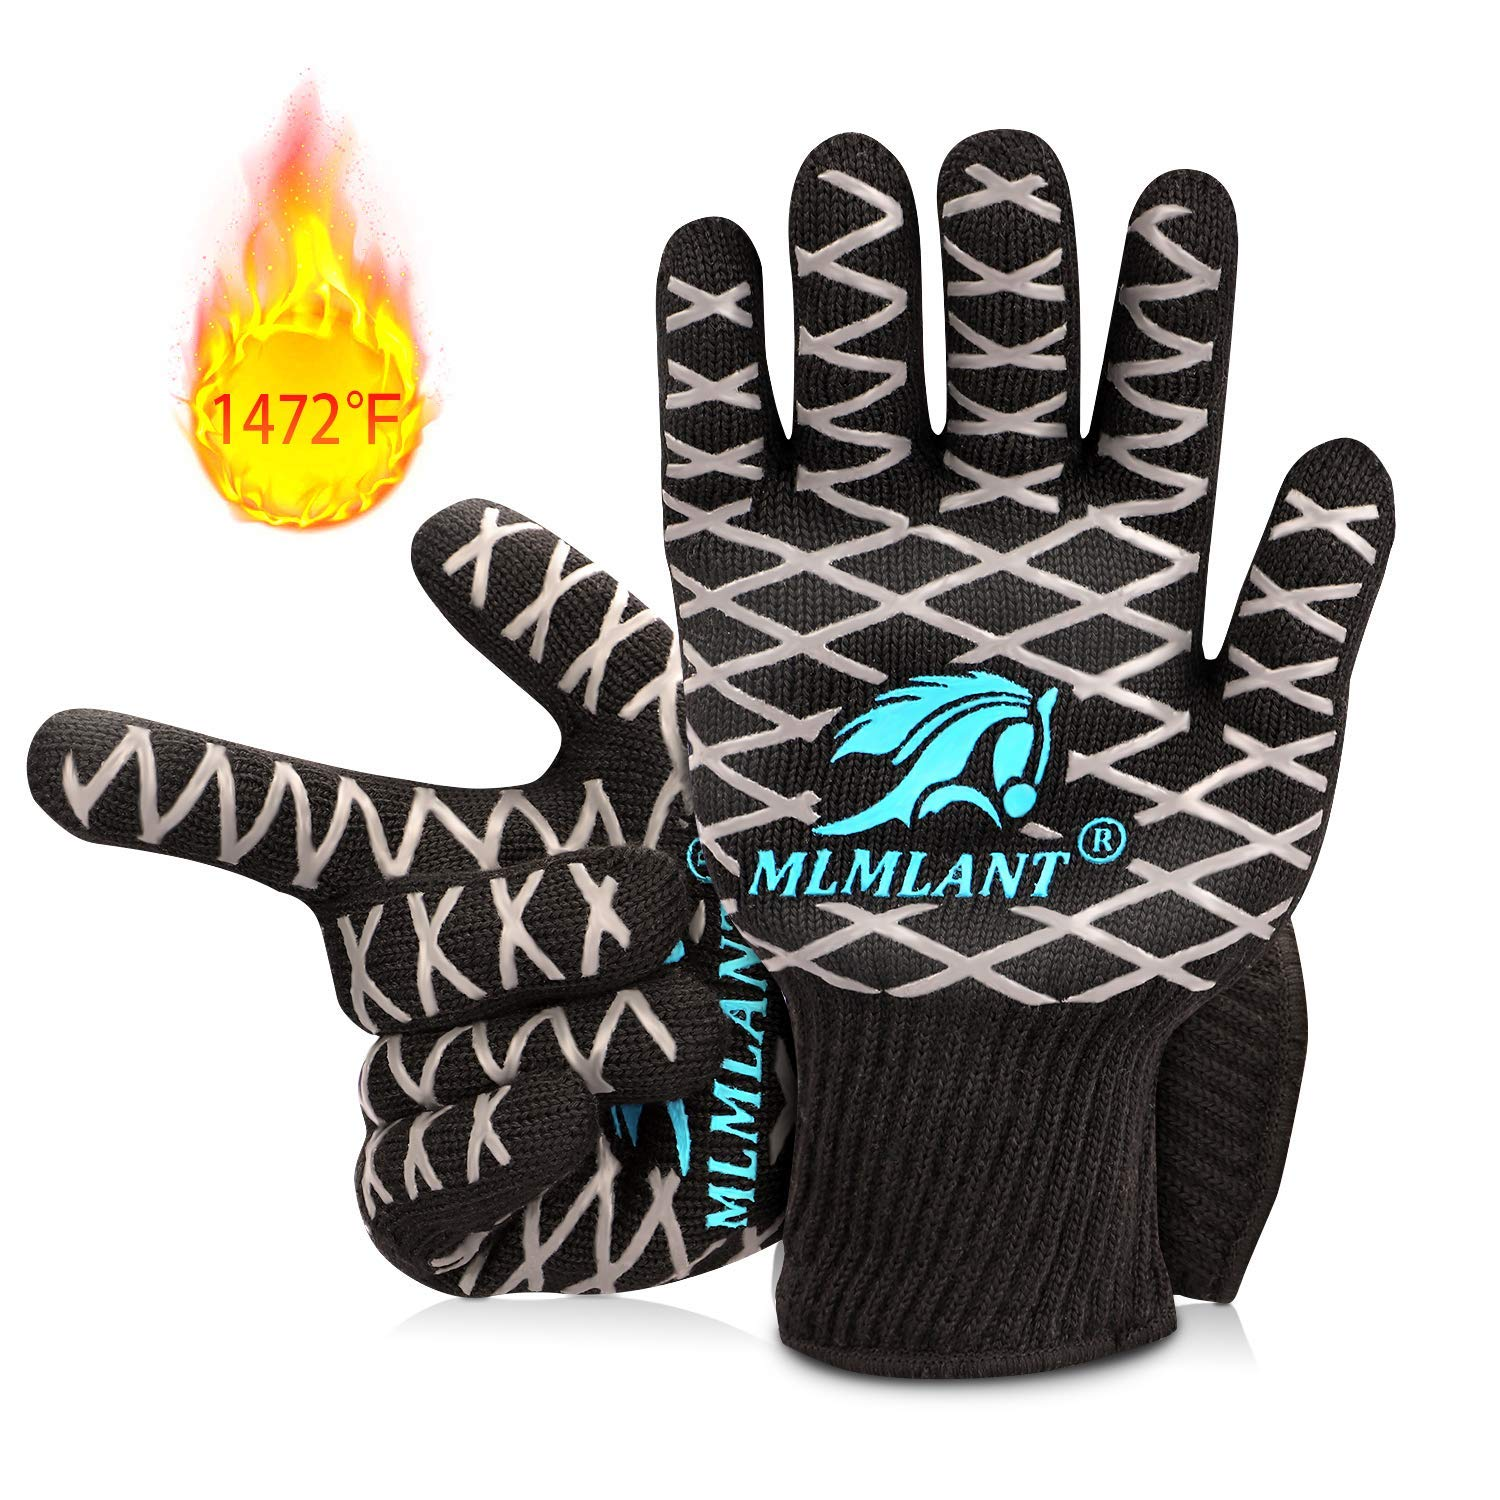 MLMLANT BBQ Grilling Gloves, 1472℉ Extreme Heat Resistant Gloves, Non-Slip & Premium Insulated Kitchen Oven Mitts for Baking Cooking Cutting Welding -1 Pair (M)